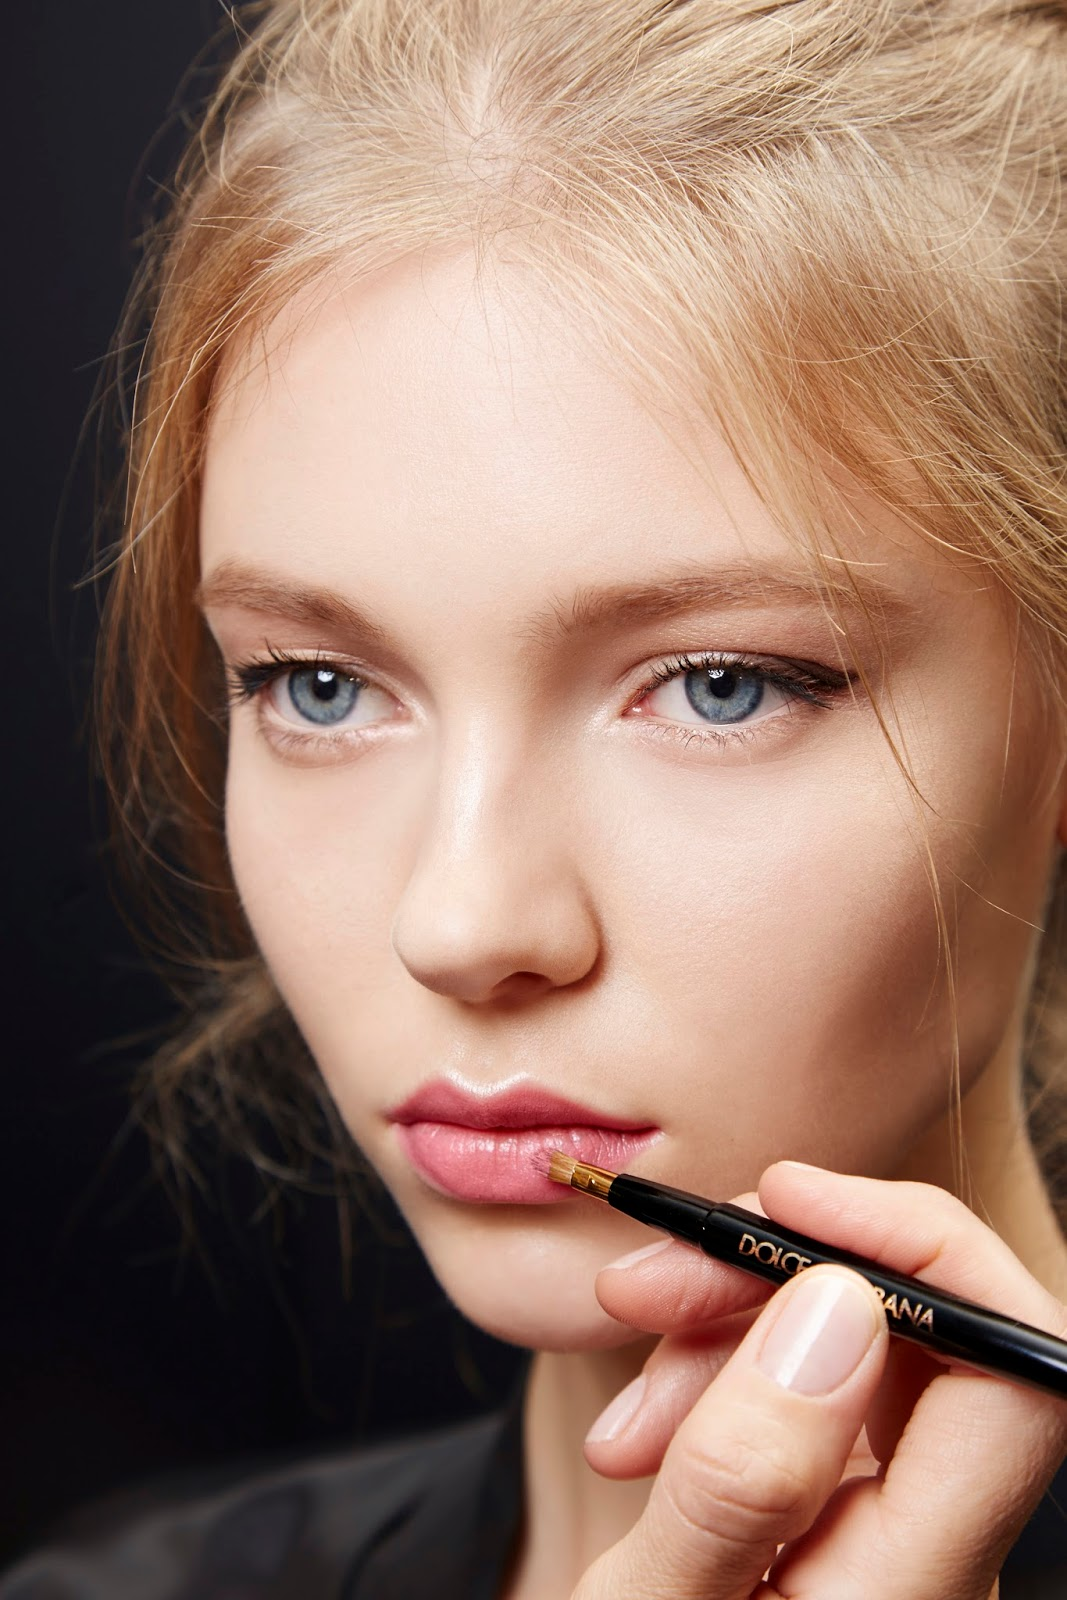 Watch Dolce Gabbana launches make-up line video